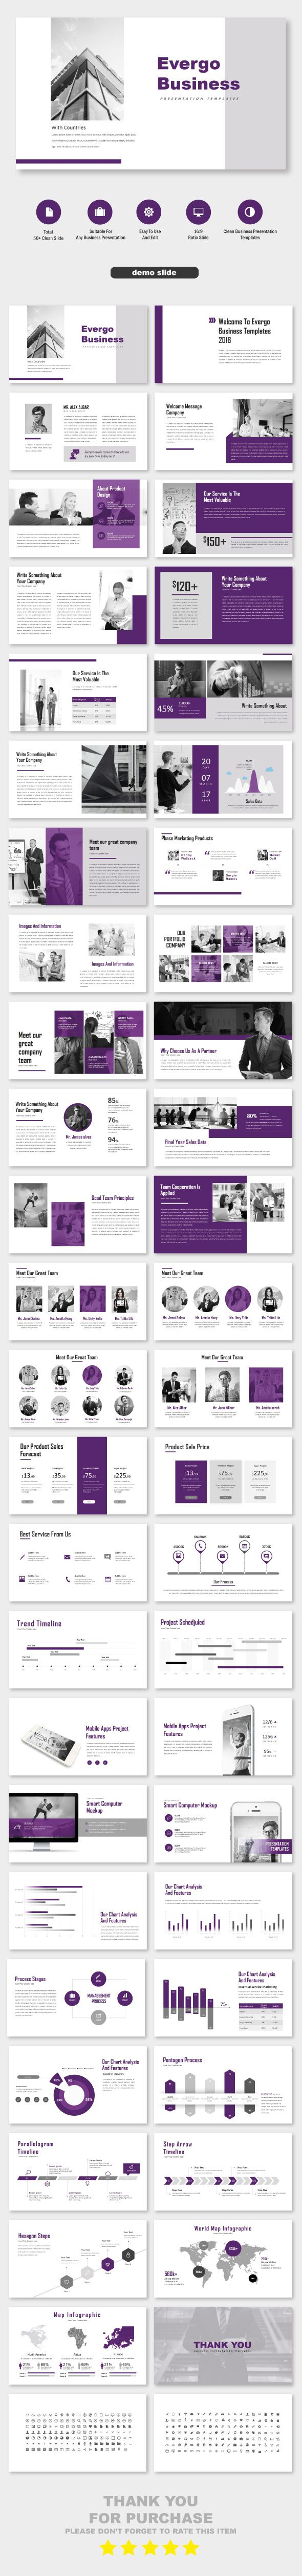 Evergo Business Proposal Keynote Templates — Keynote KEY #seo #business • Download ➝ https://graphicriver.net/item/evergo-business-proposal-keynote-templates/21426415?ref=pxcr